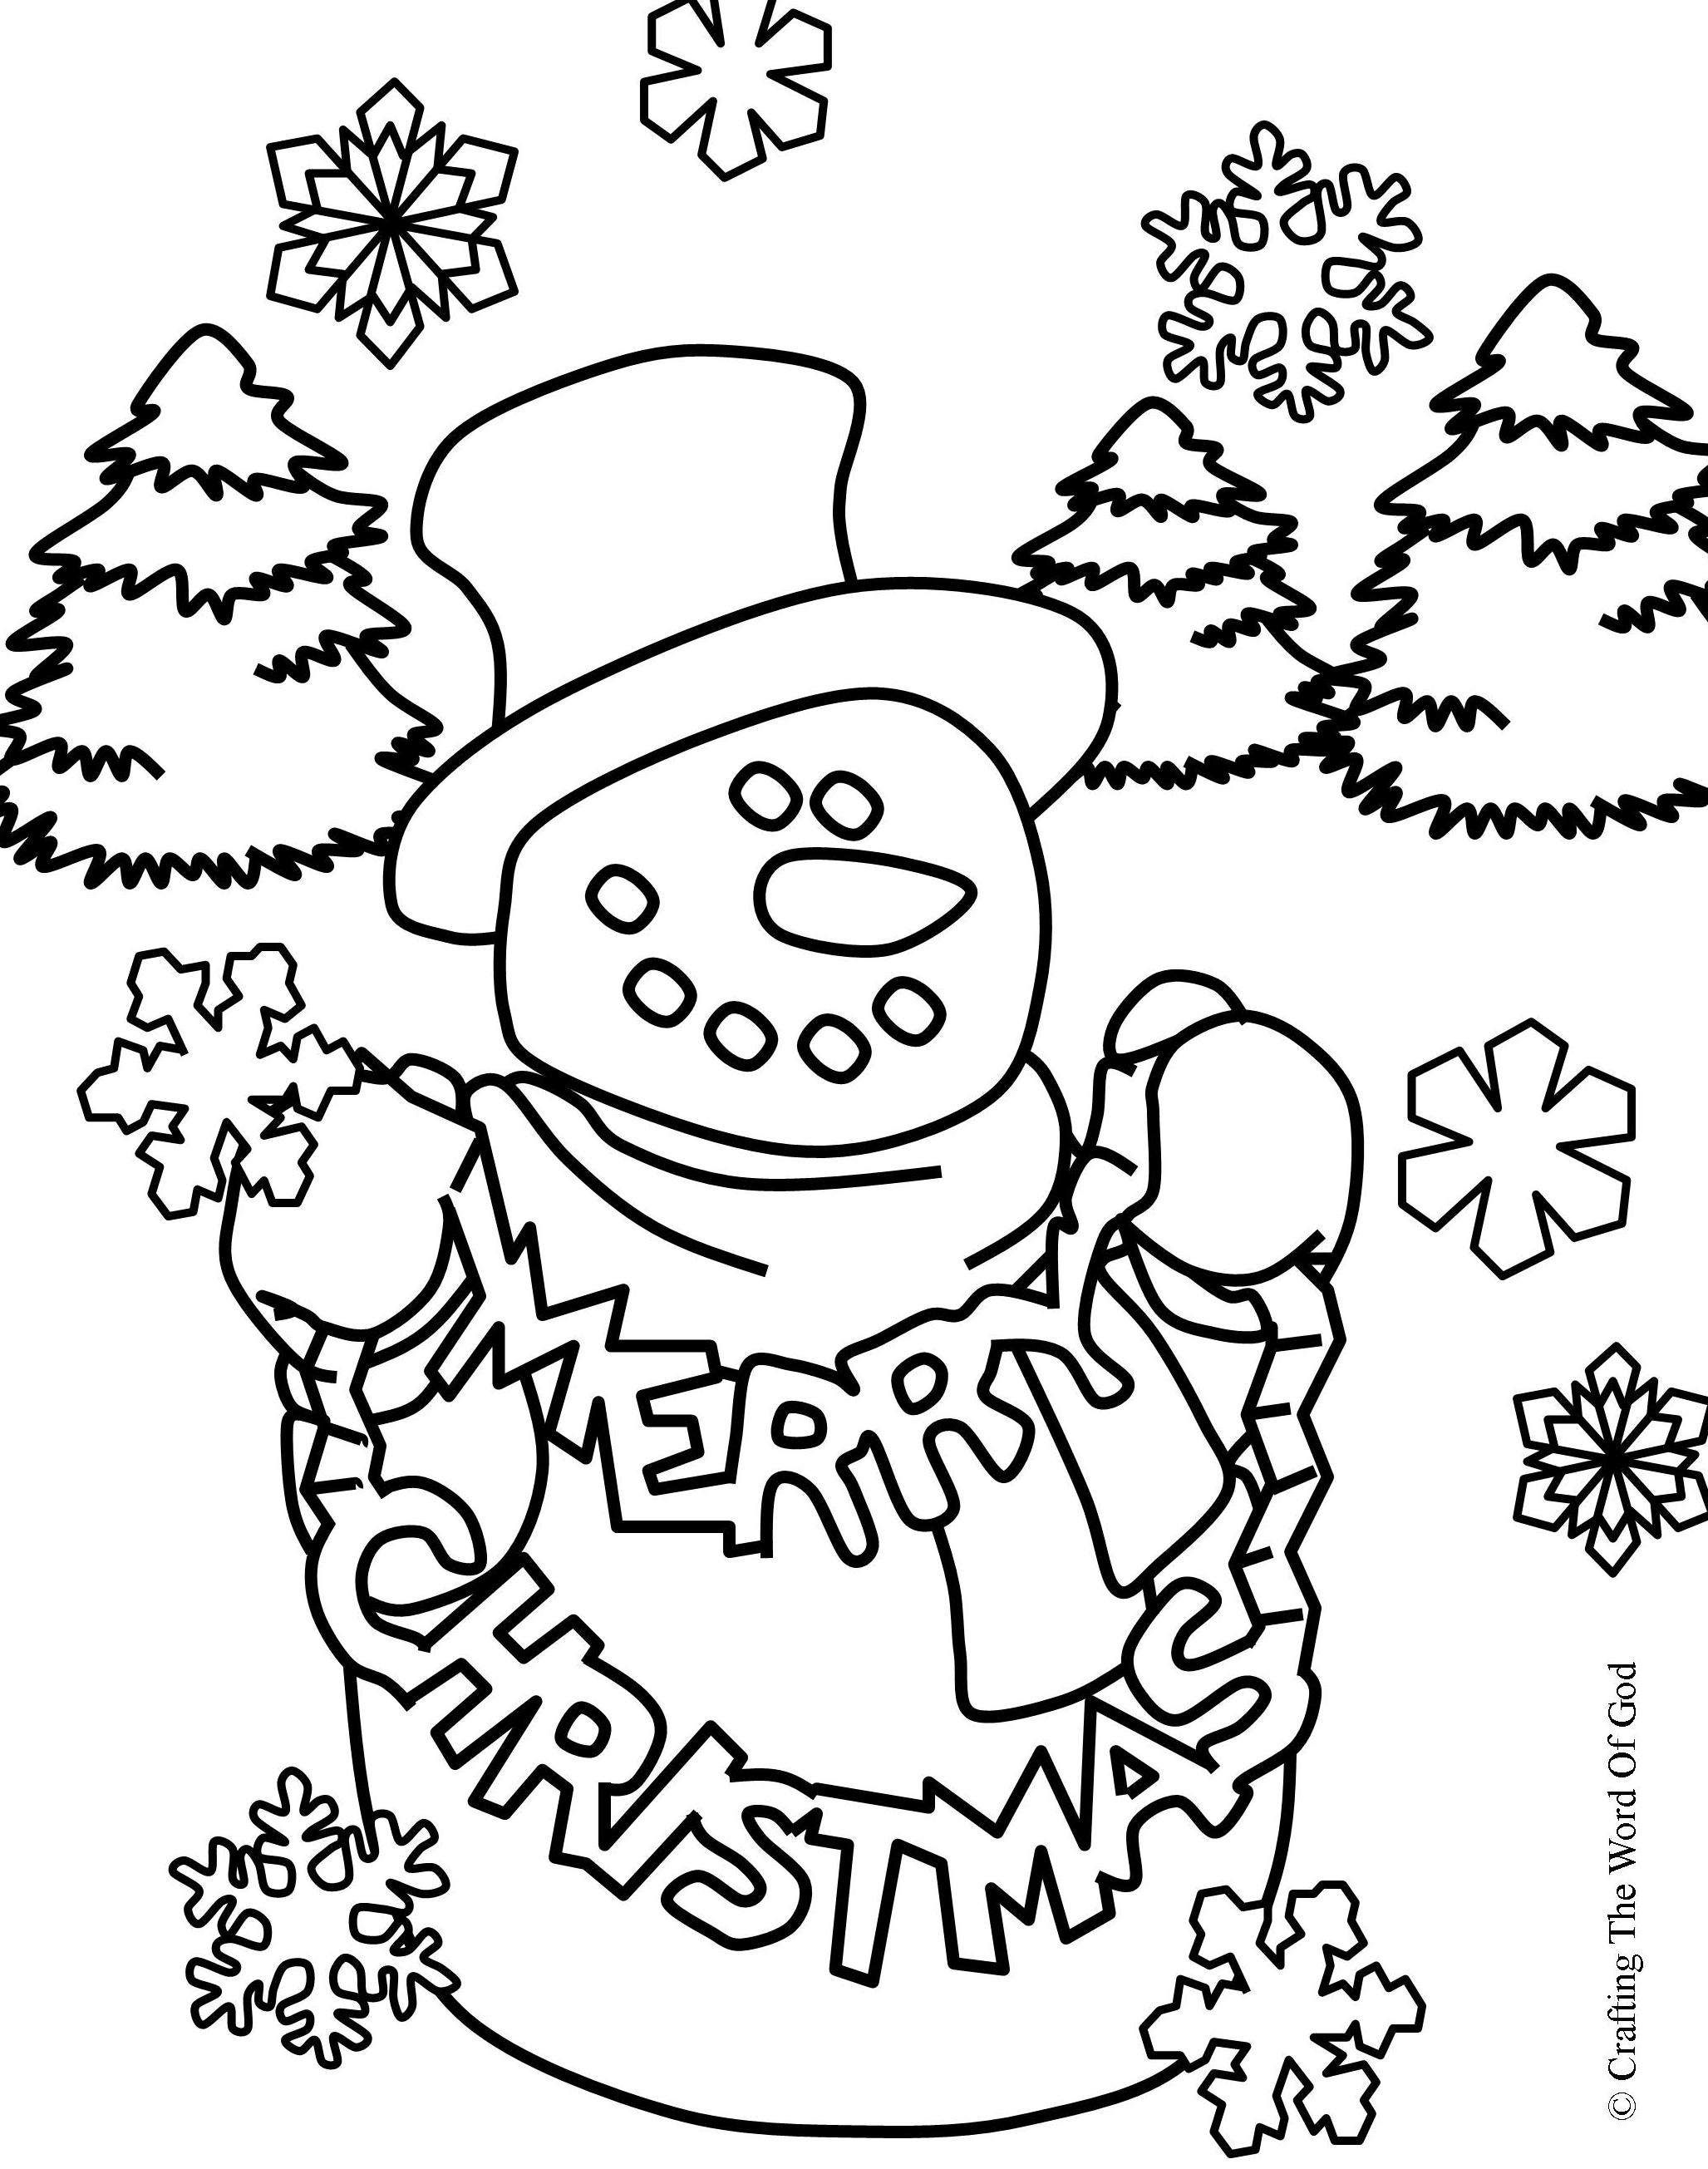 Christmas Coloring Page 2- Coloring Page « Crafting The ...